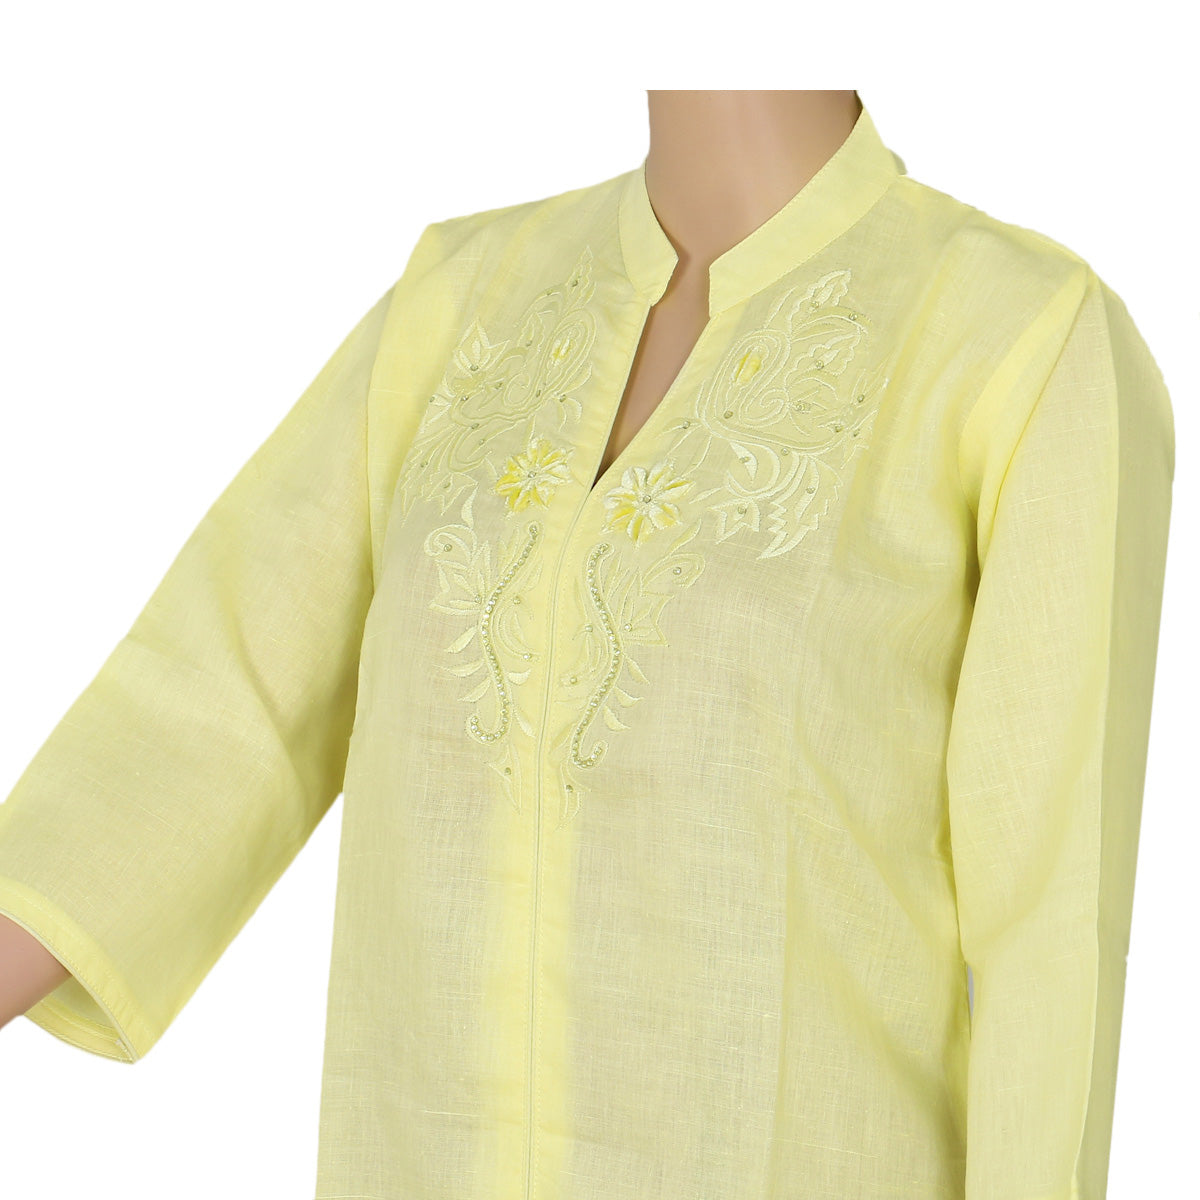 Blended Cotton kurta Light yellow with embroidery design